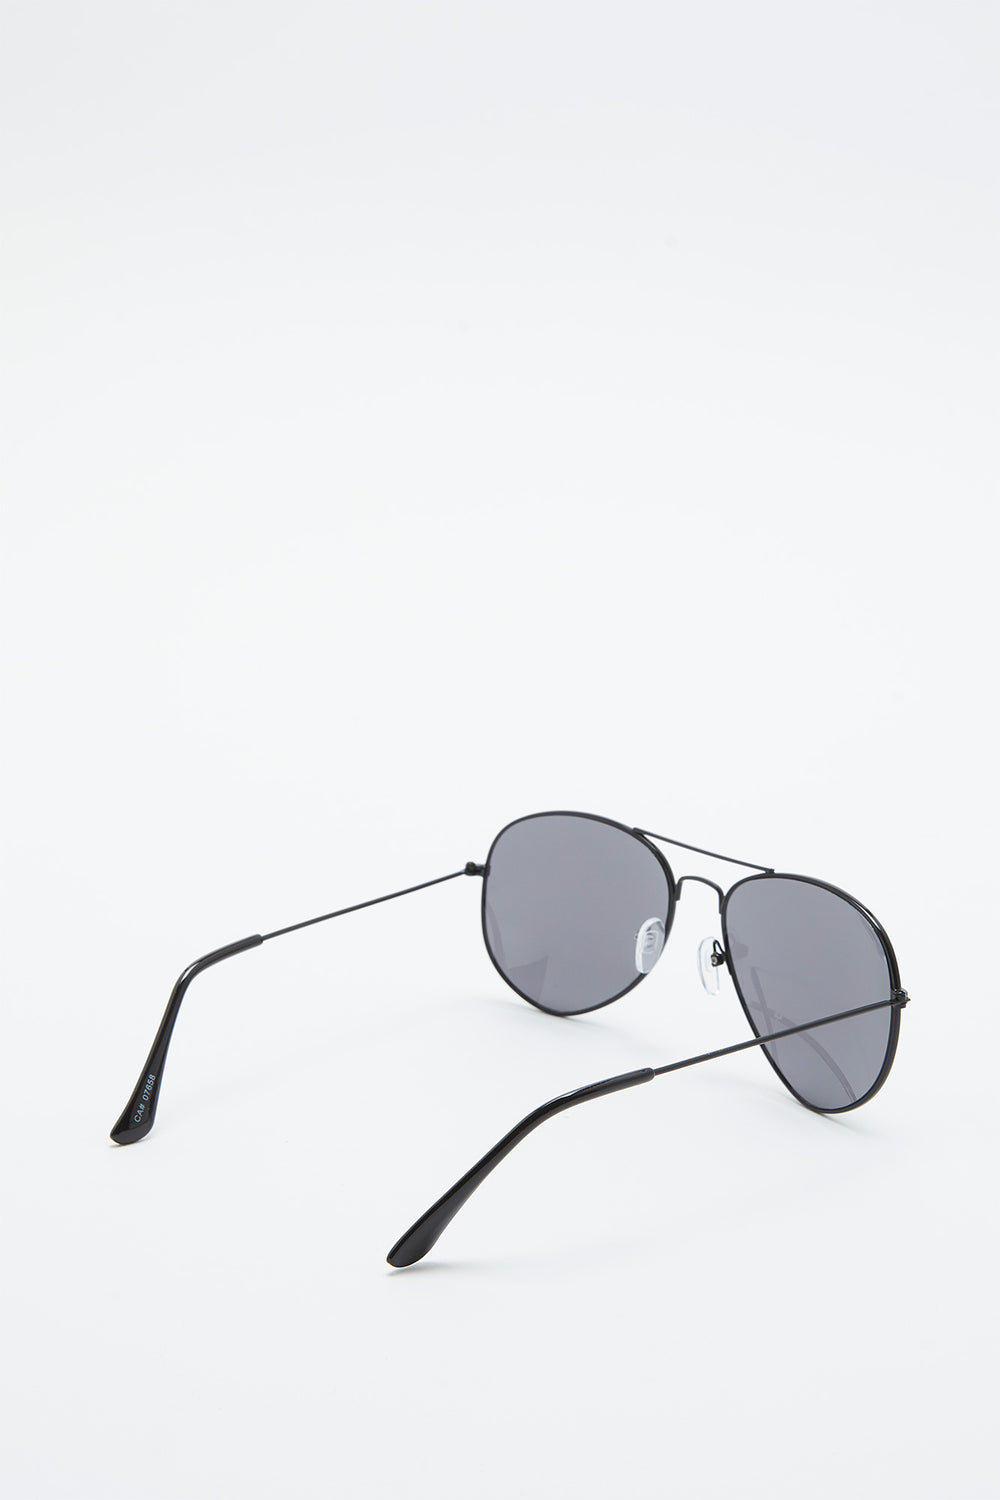 Basic Aviator Sunglasses Black